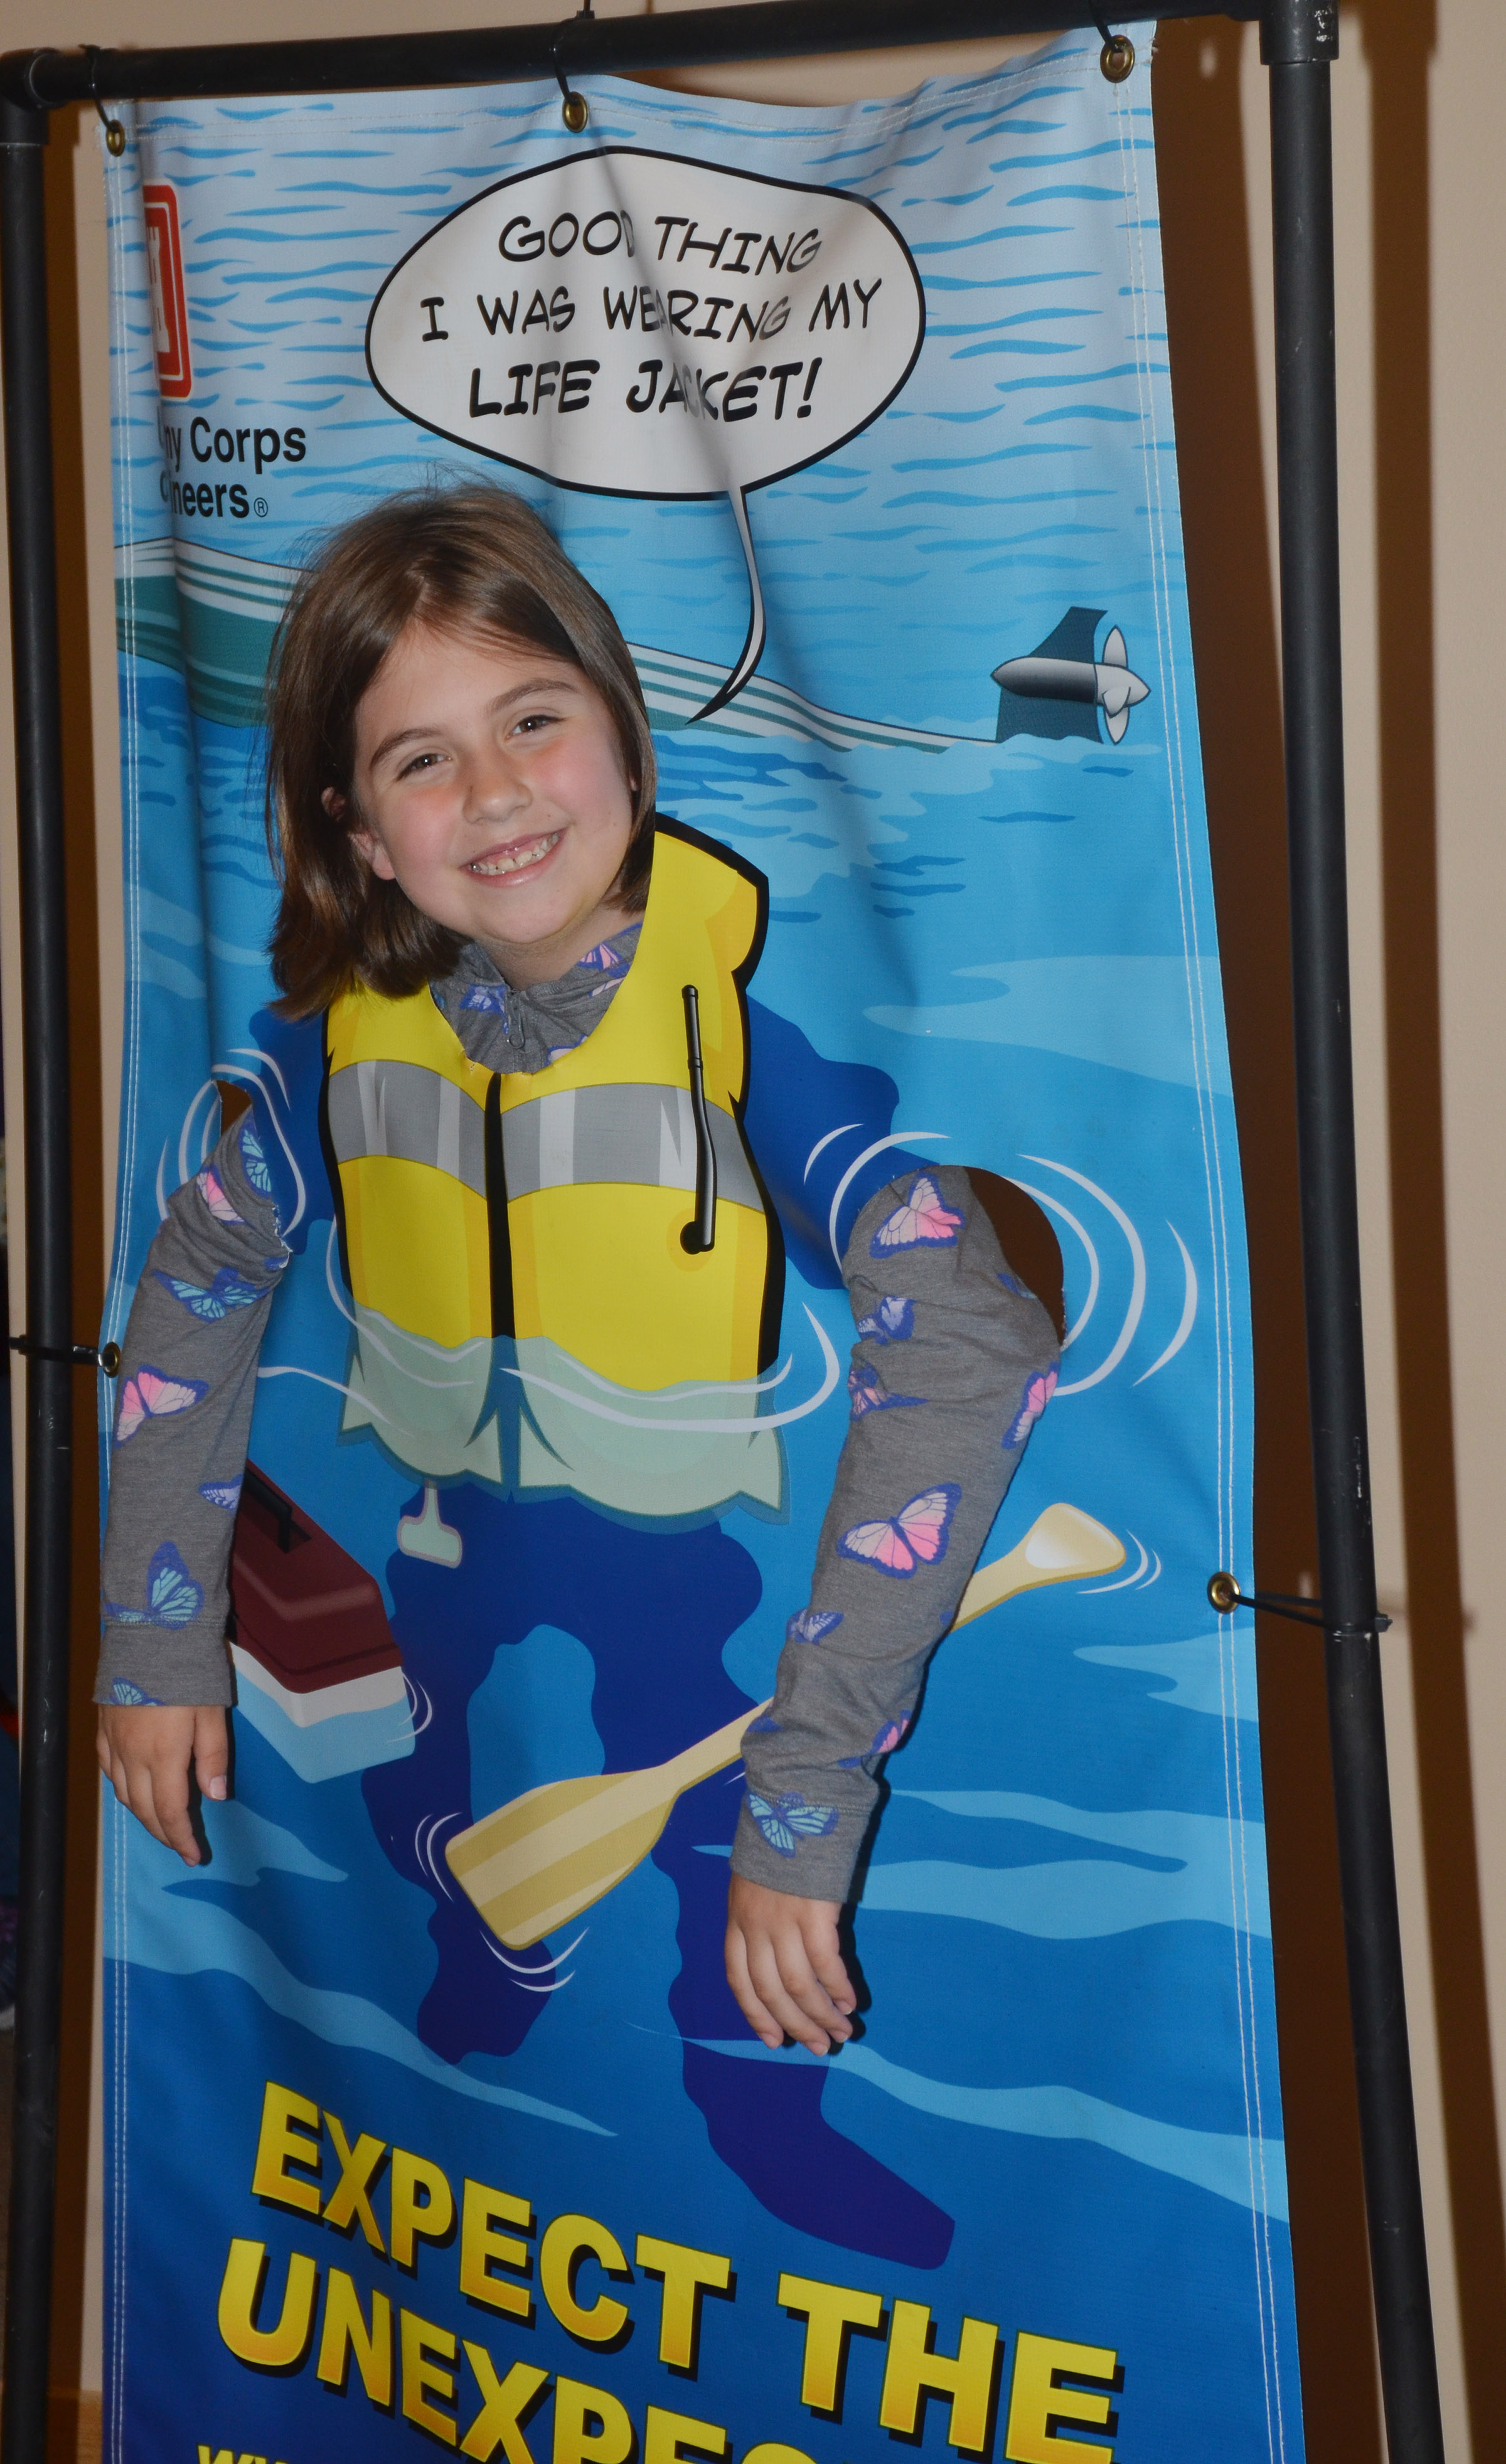 CES third-grader Adrianna Garvin poses for a photo wearing a life jacket at the Green River Lake Visitor Center.